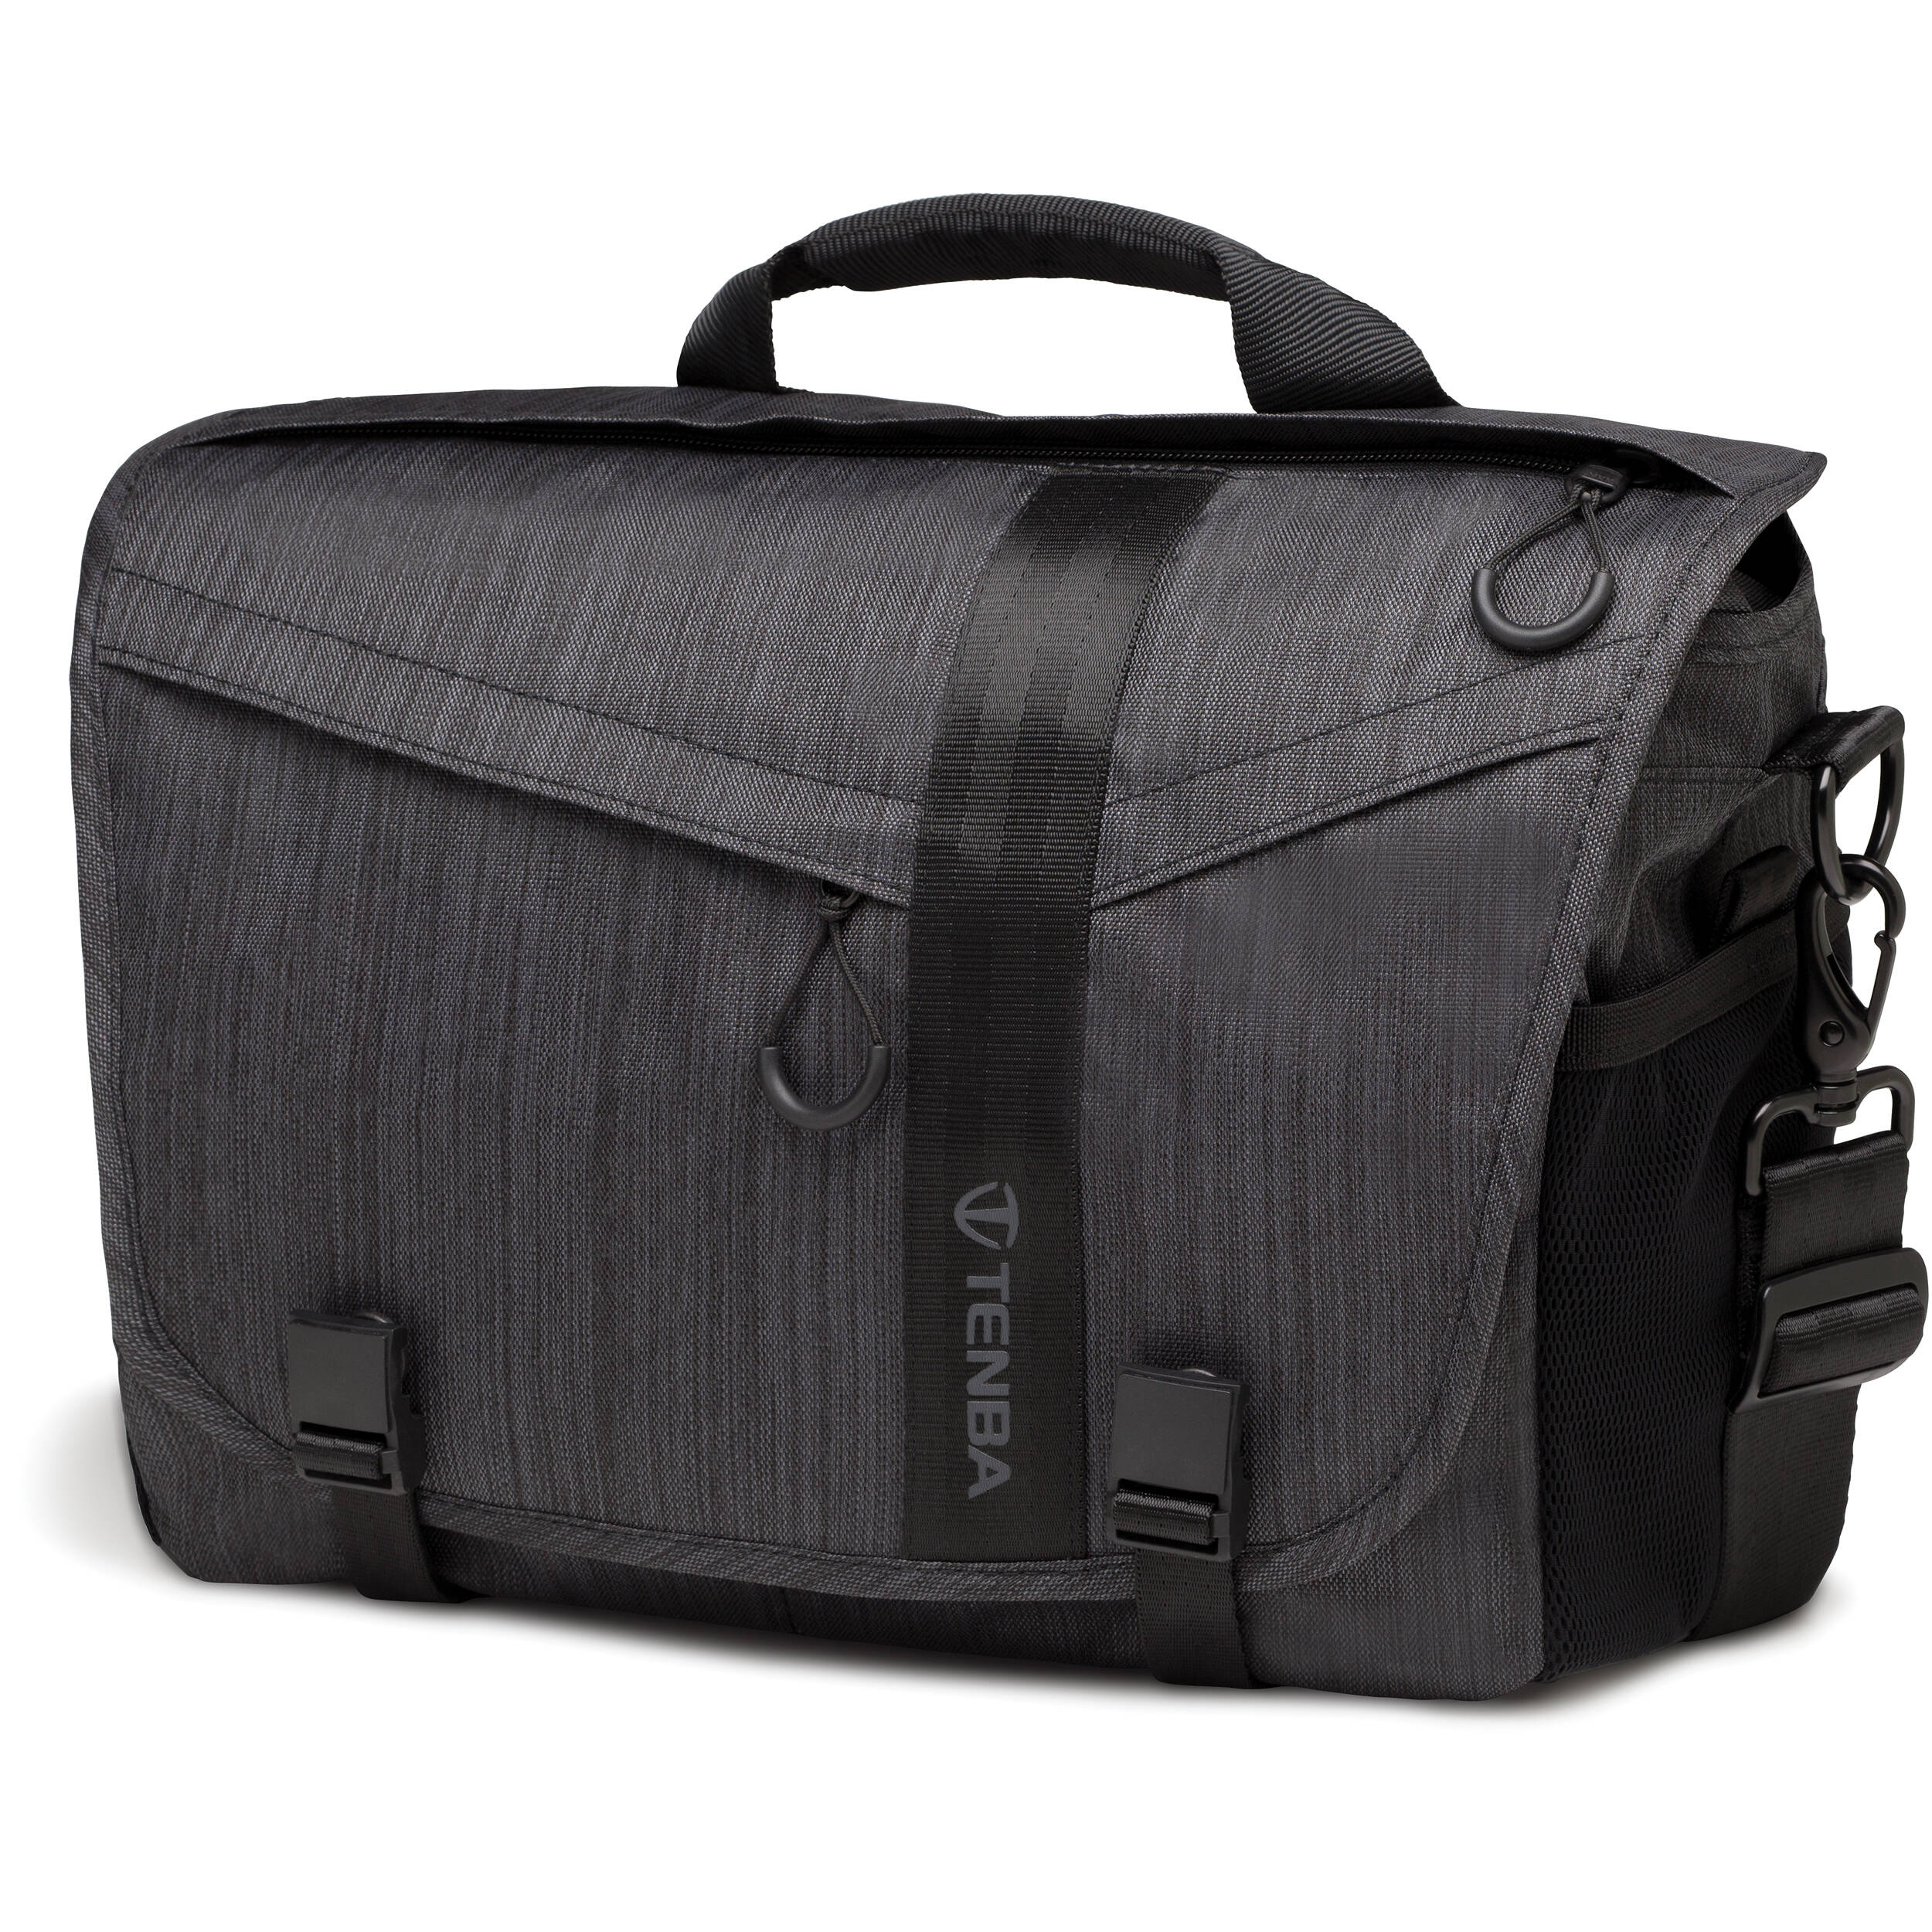 Tenba Dna 11 Messenger Bag Graphite 638 371 Bh Photo Video